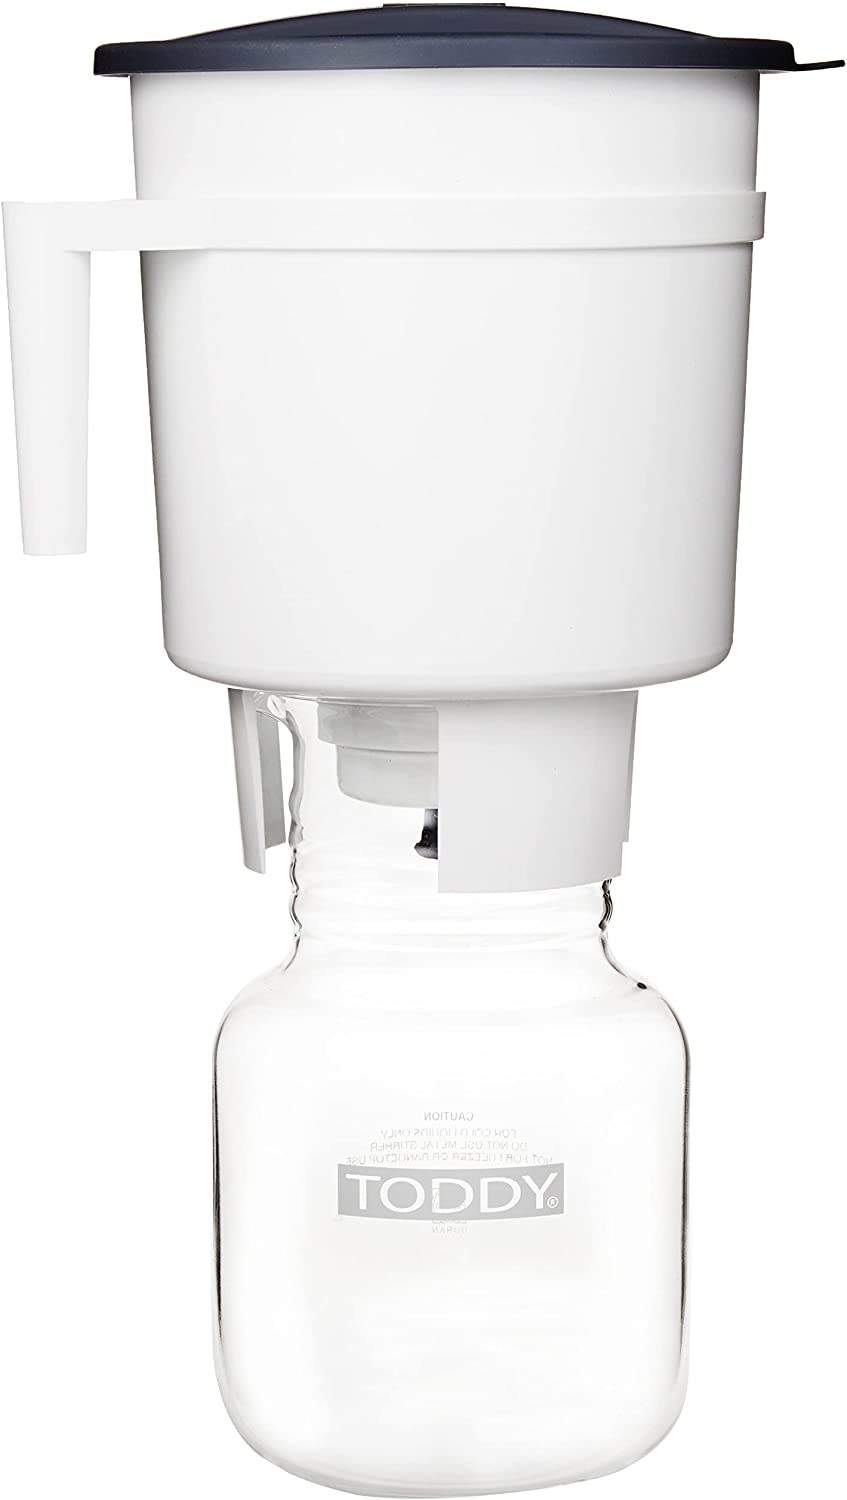 Toddy® Cold Brew System - Staycation Edition, white, 7.25 x 7.25 x 12.5 inches